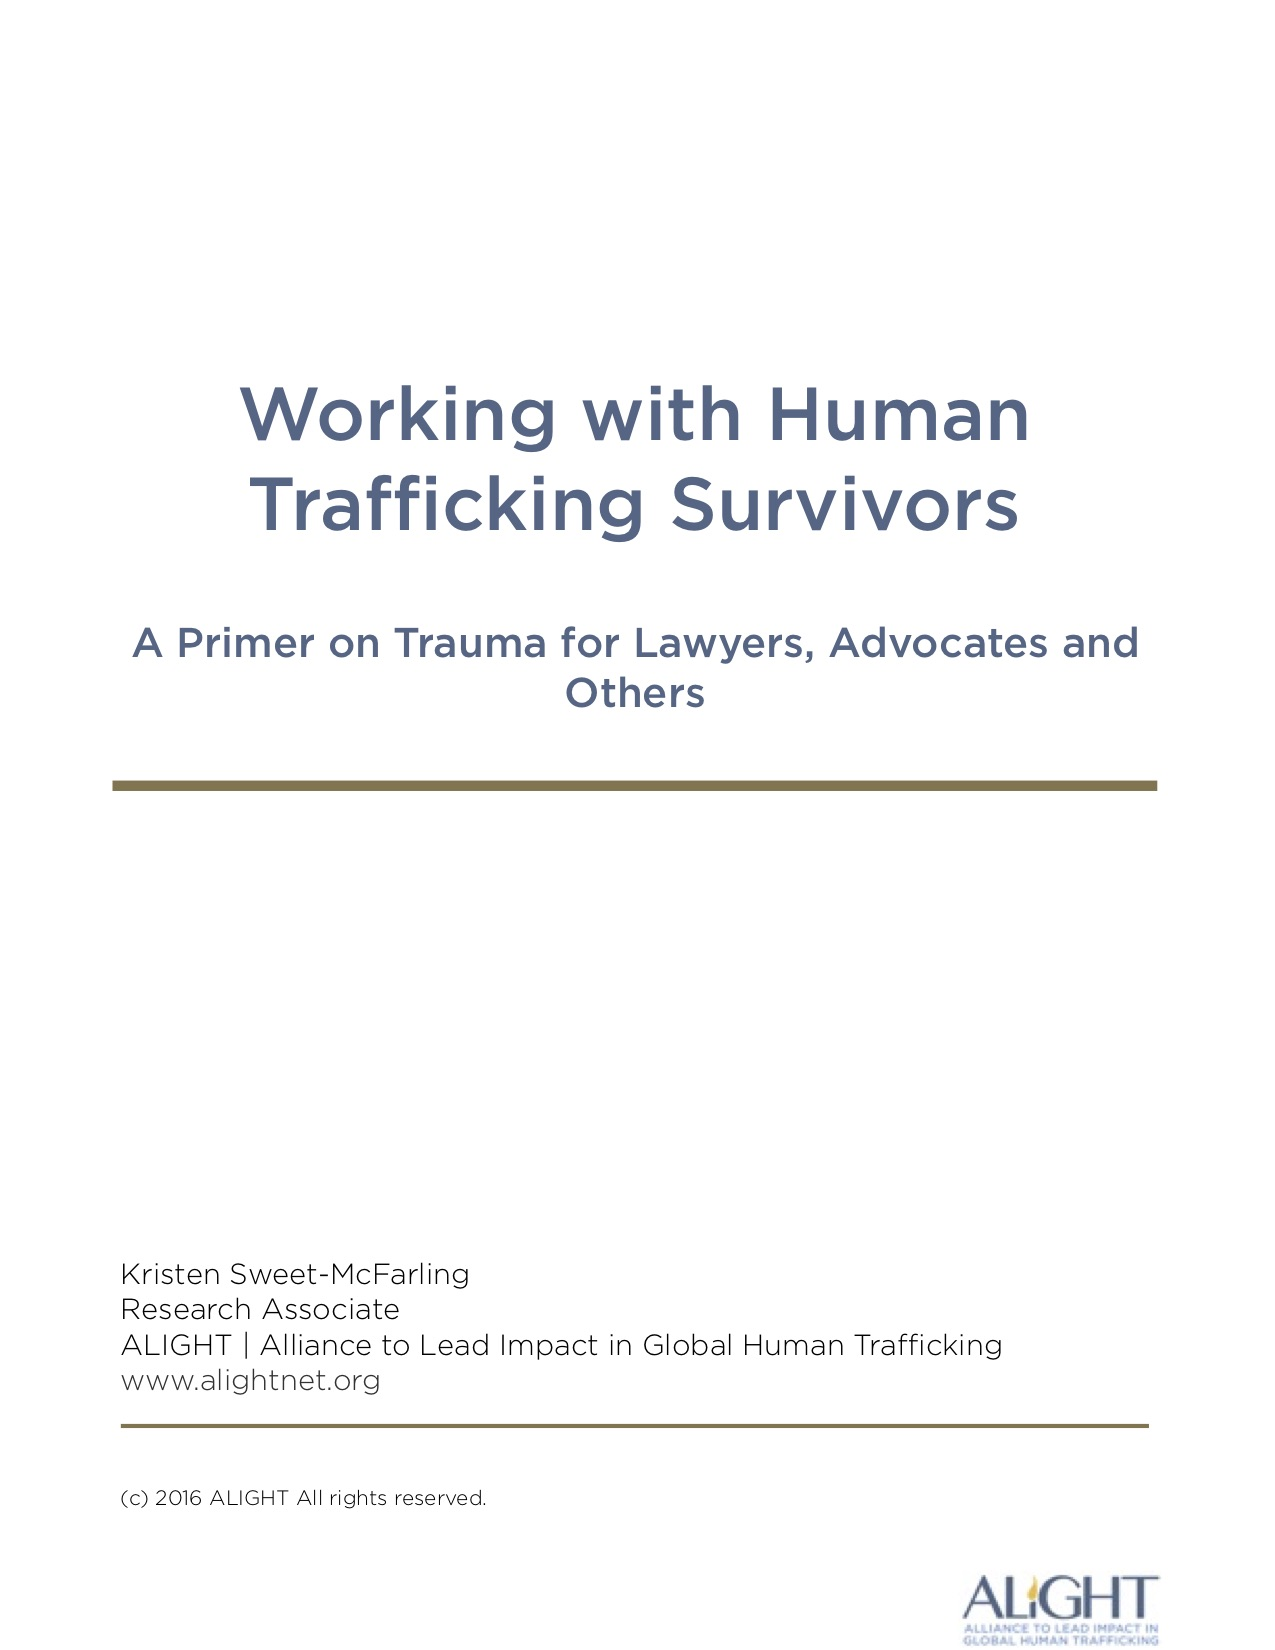 Working with Human Trafficking Survivors: A Primer on Trauma for Lawyers, Advocates and Others